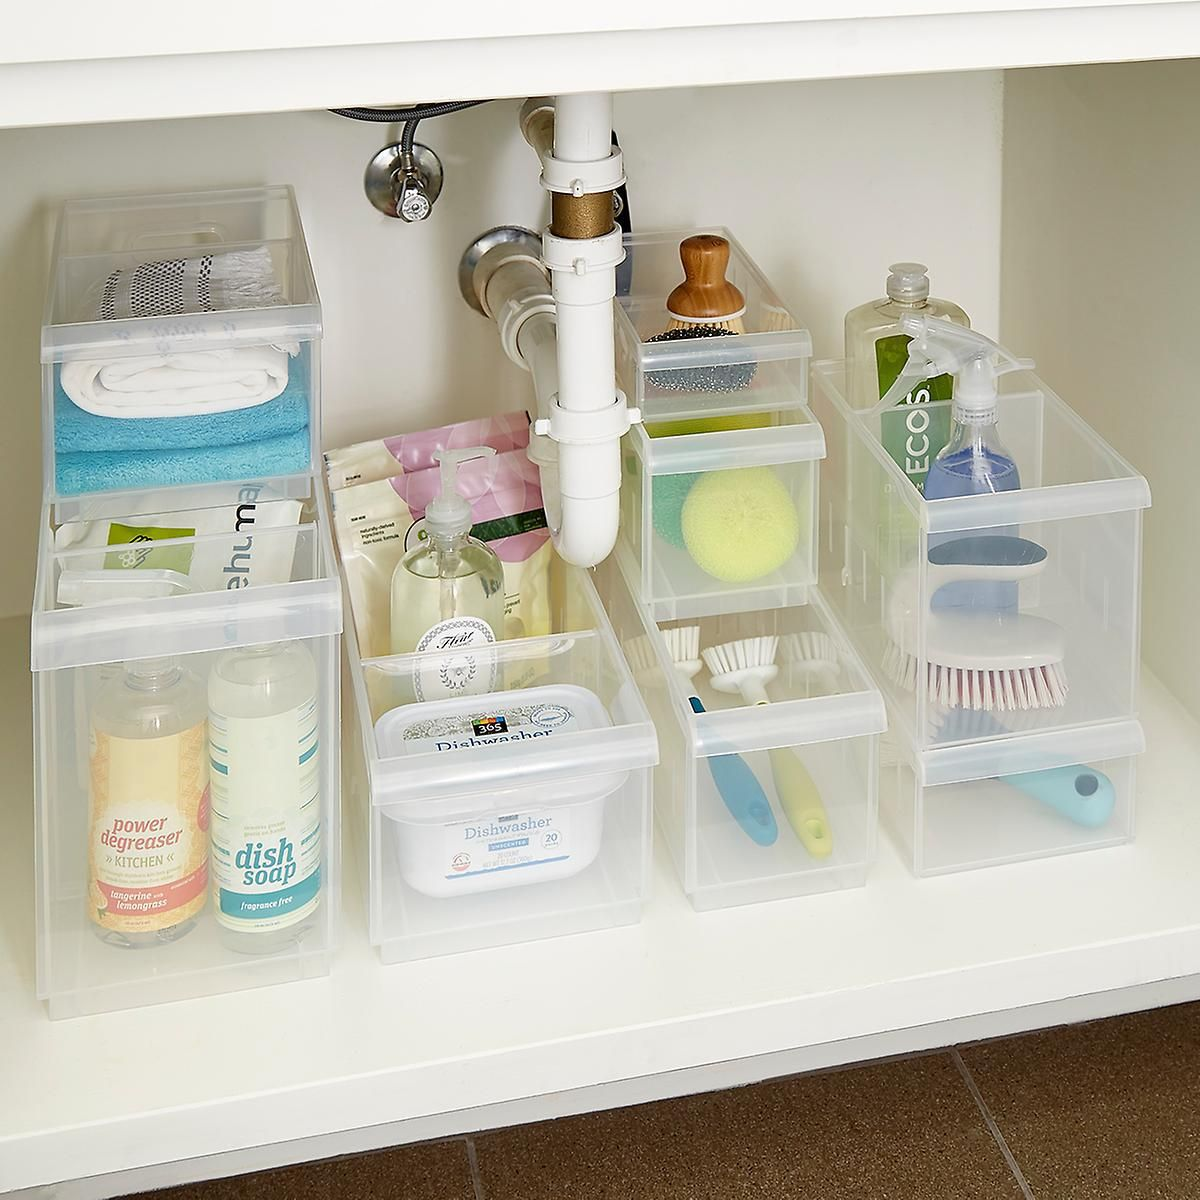 Clear Stackable Plastic Storage Bins Stackable Plastic Storage Bins Under Bathroom Sinks Under Sink Organization